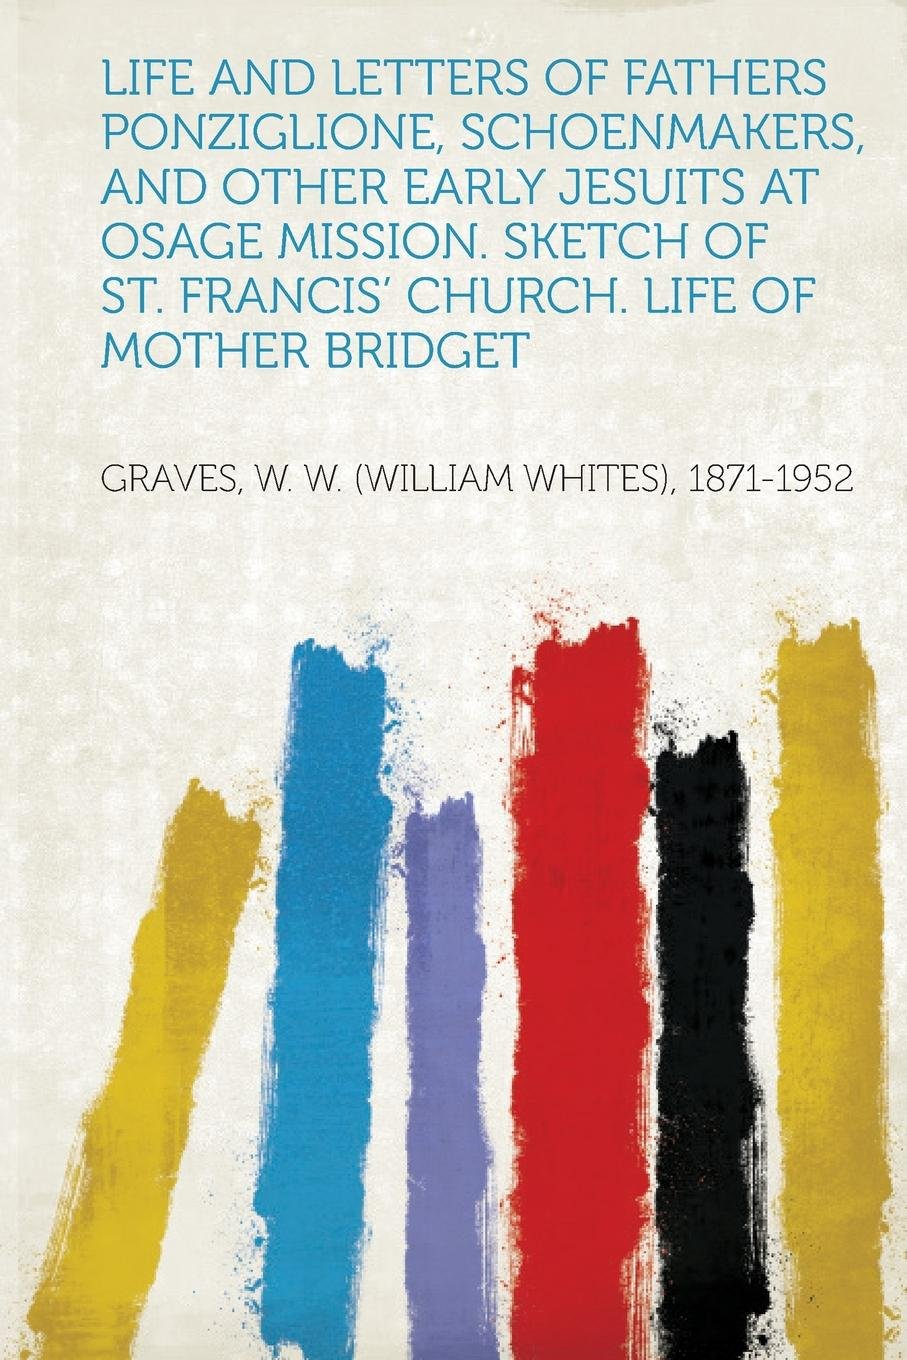 Life and Letters of Fathers Ponziglione, Schoenmakers, and Other Early Jesuits at Osage Mission. Sketch of St. Francis' Church. Life of Mother Bridget ebook